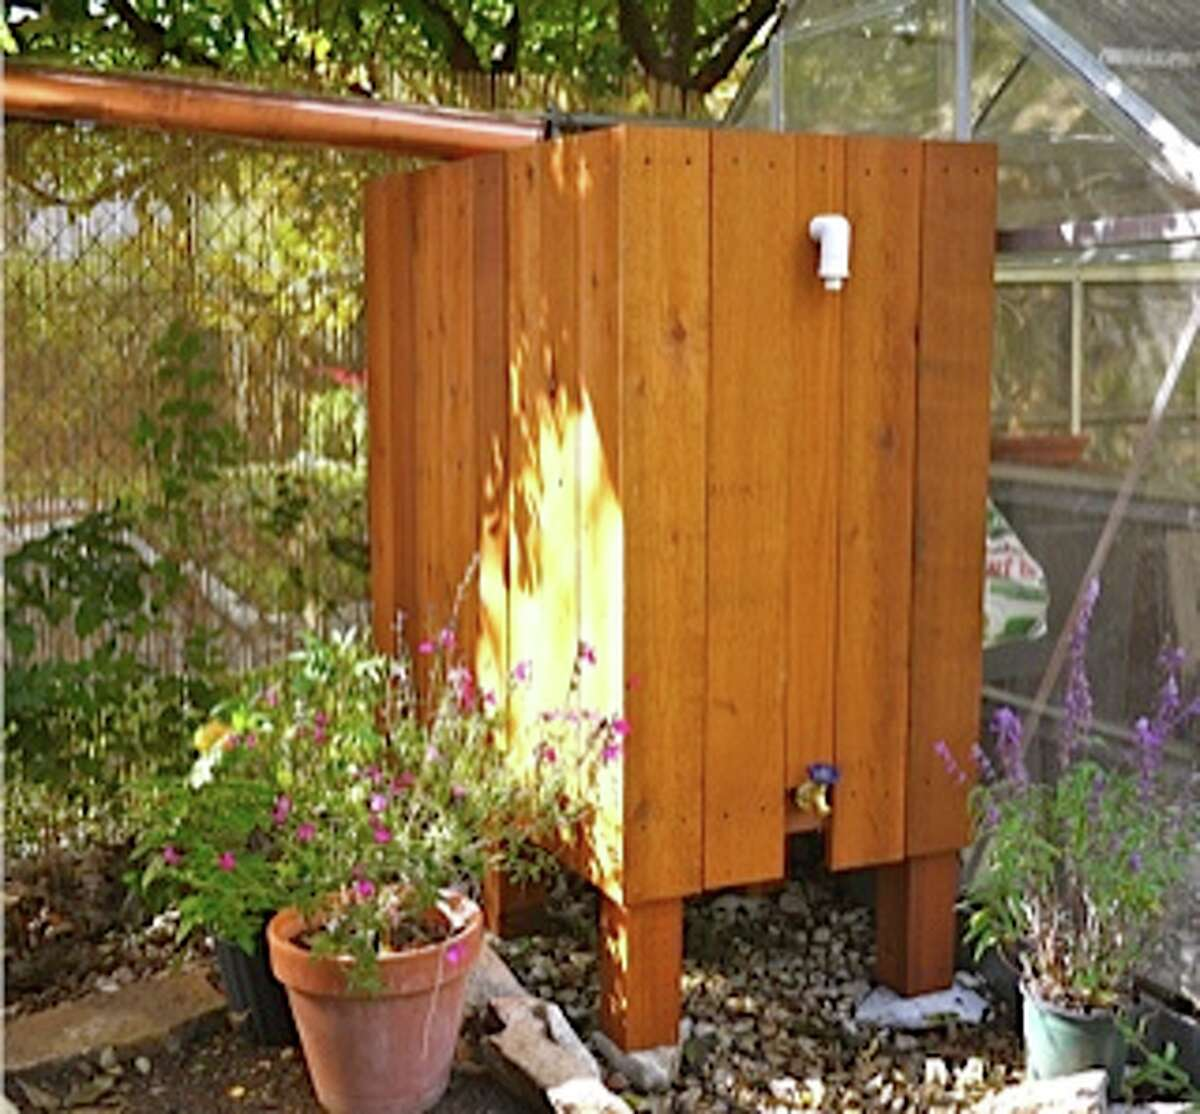 Two 55-gallon drums hidden behind cedar boards collect rainwater off a roof for landscape watering.